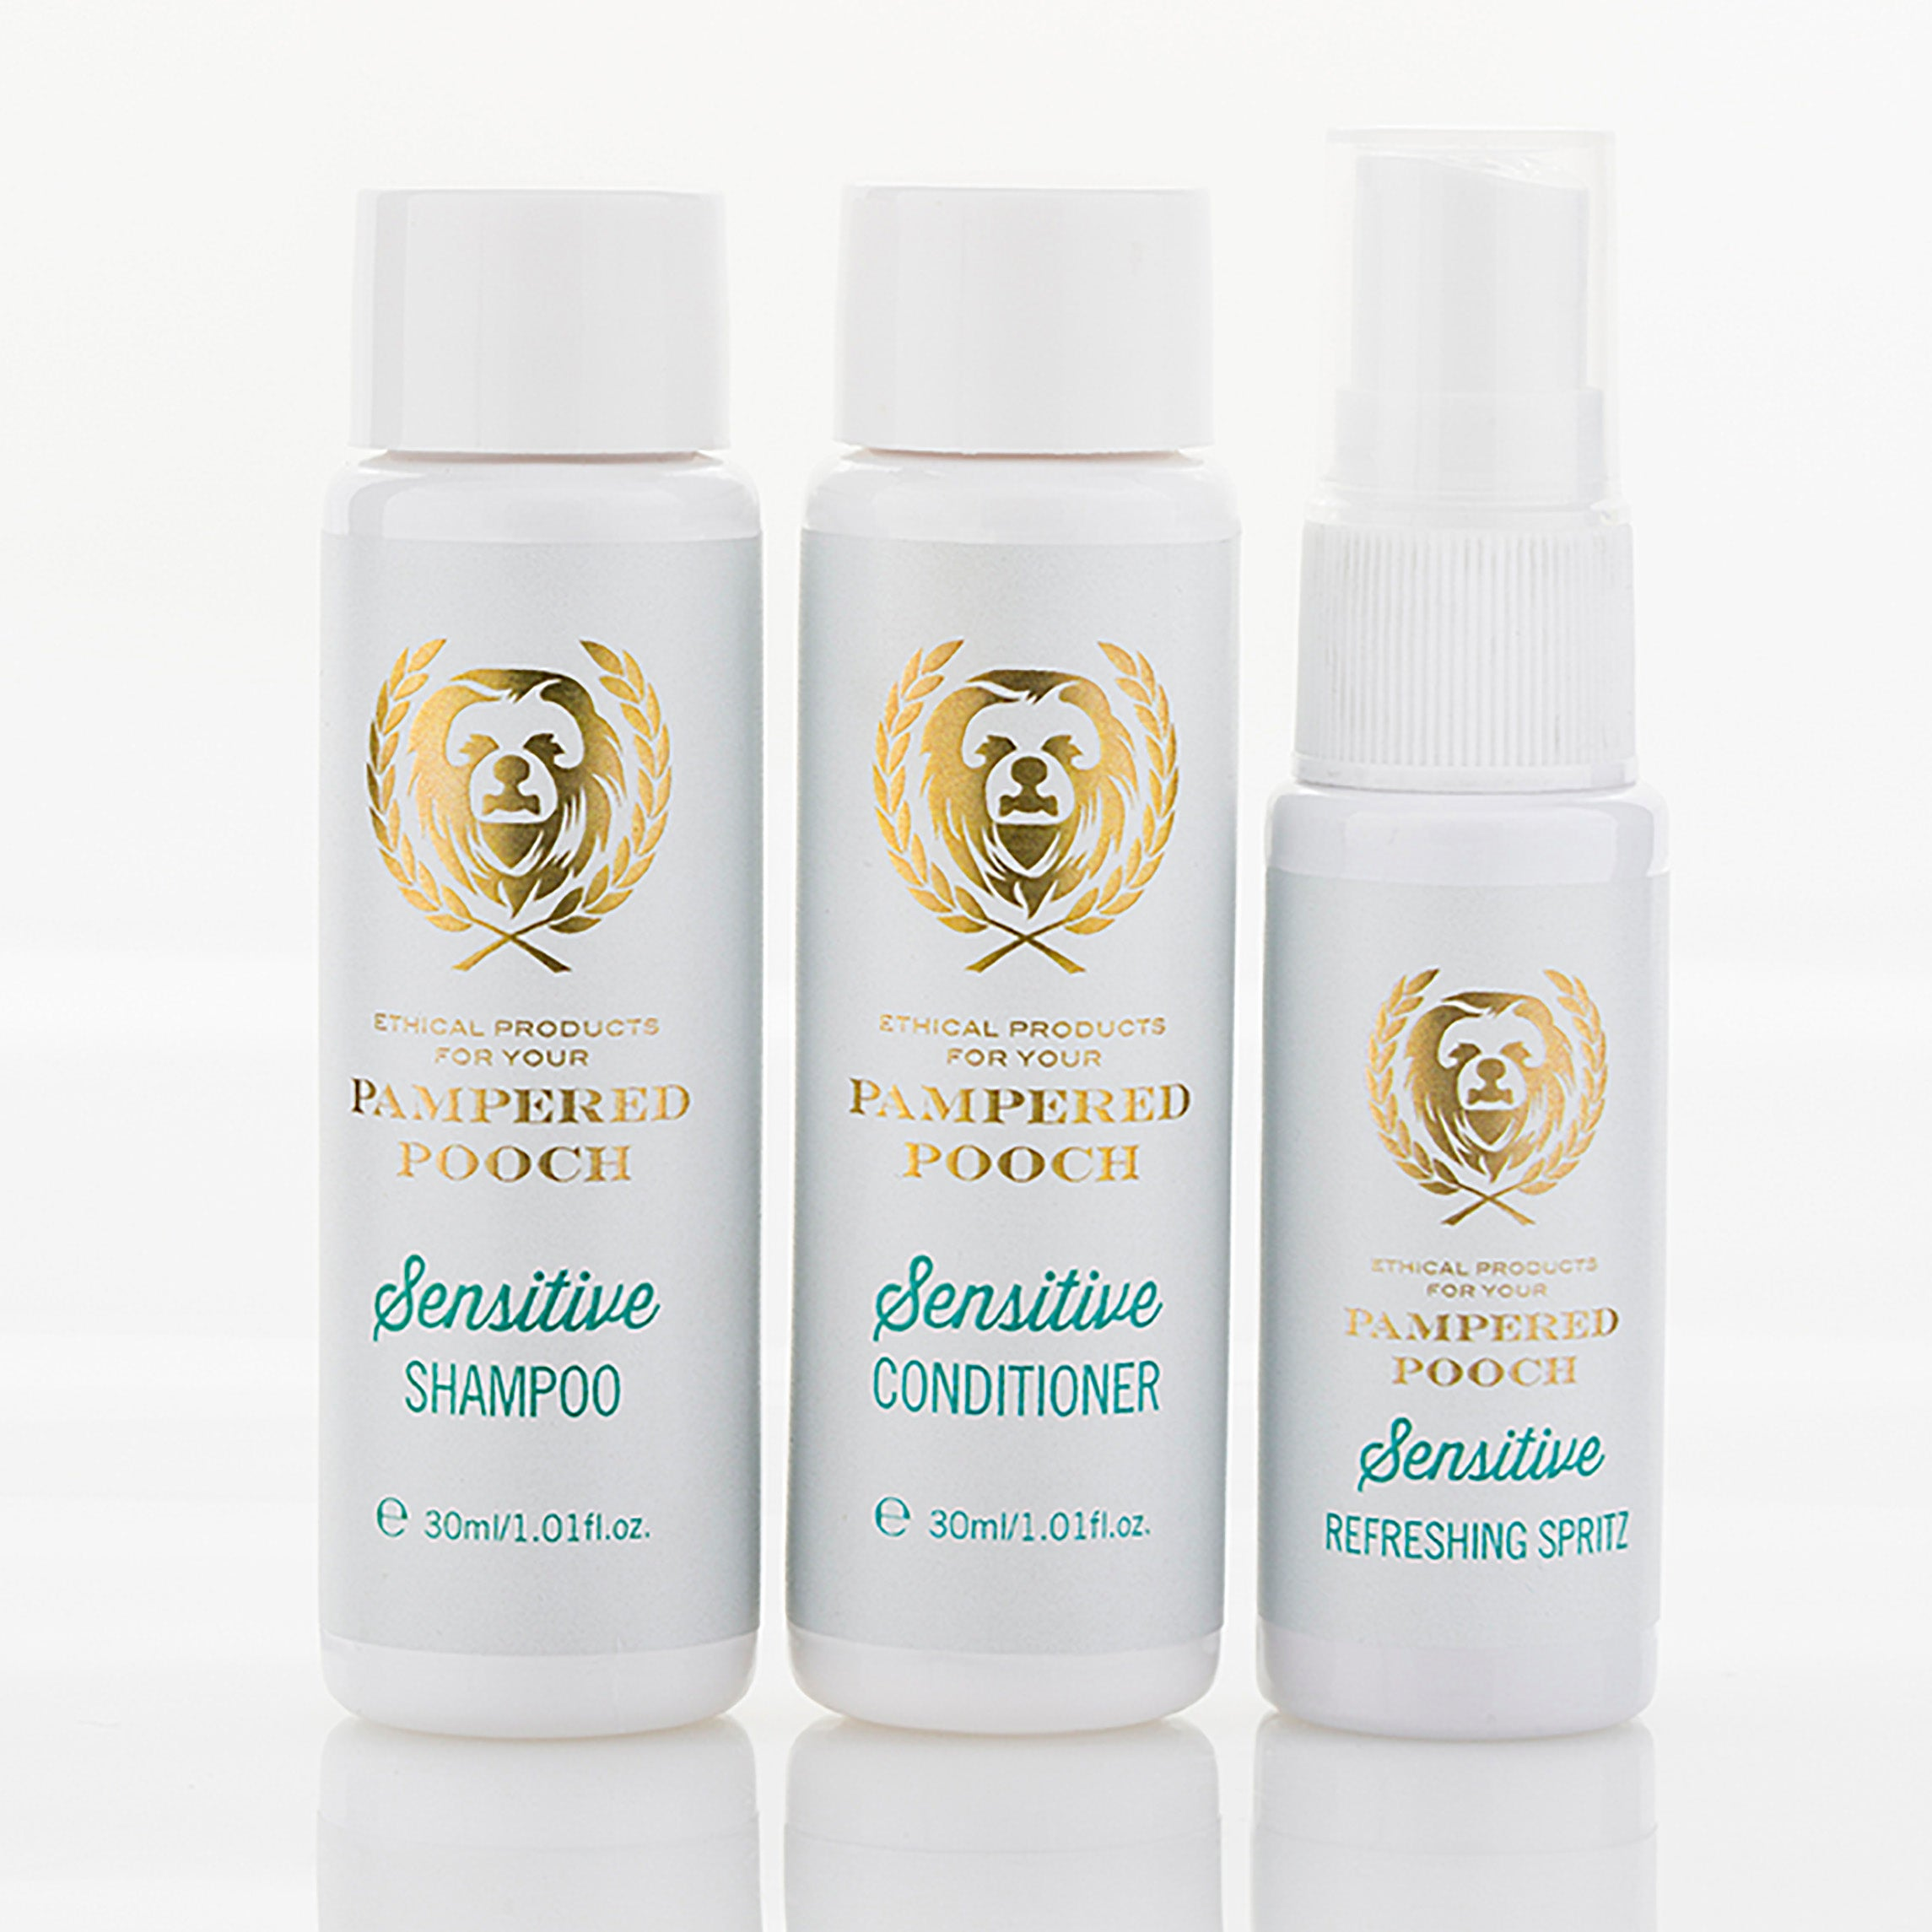 Pamper your Pooch with our Sensitive Trial Pack containing a mini Shampoo, Conditioner and Refreshing Spritz - leaving Pooch's fur soft, shiny, snuggly and smelling fresh! For dogs with itchy, sensitive skin.